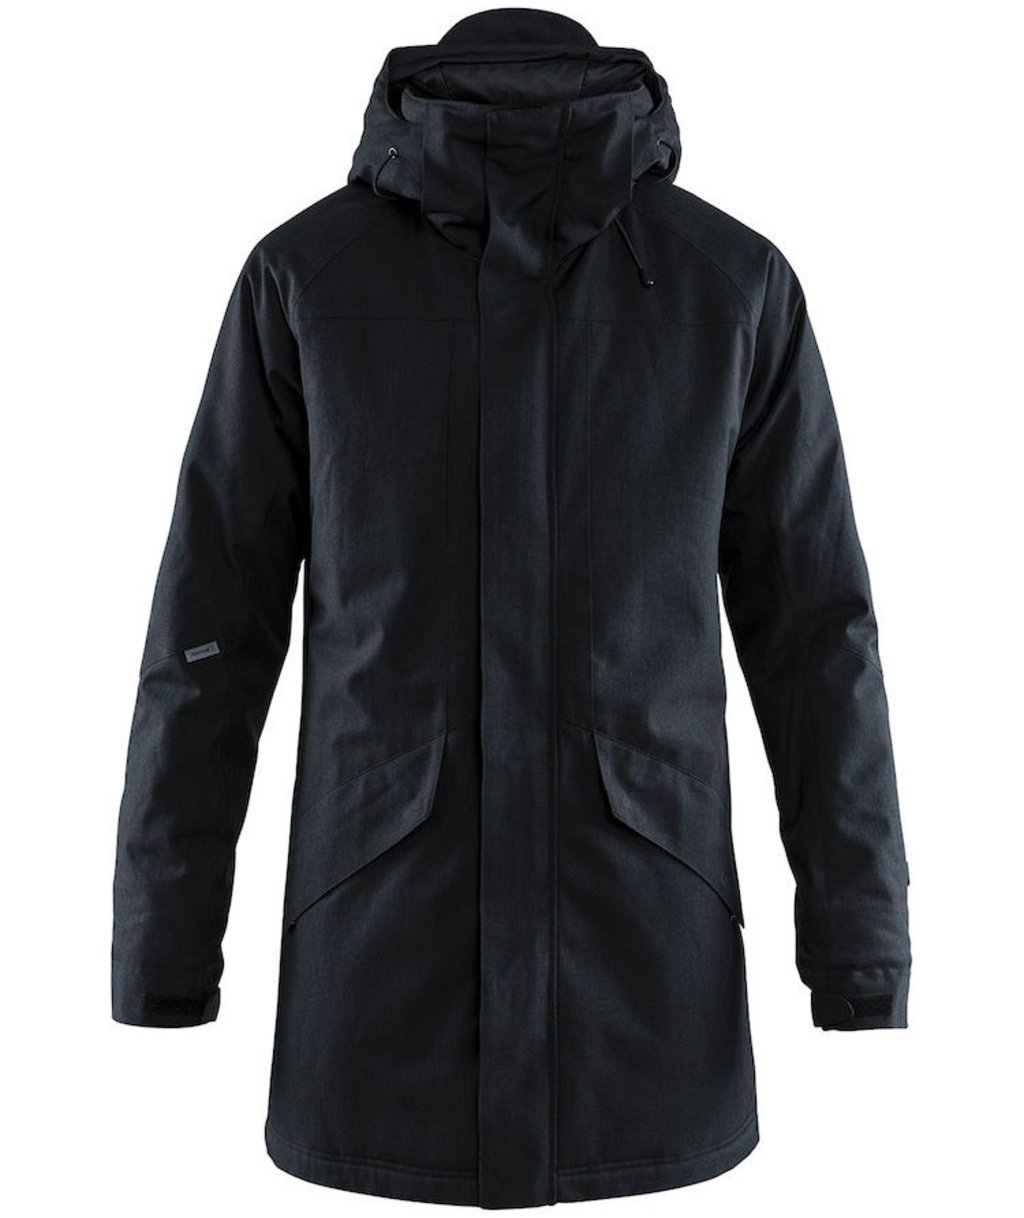 Craft Mountain parka vinterjakke, Svart